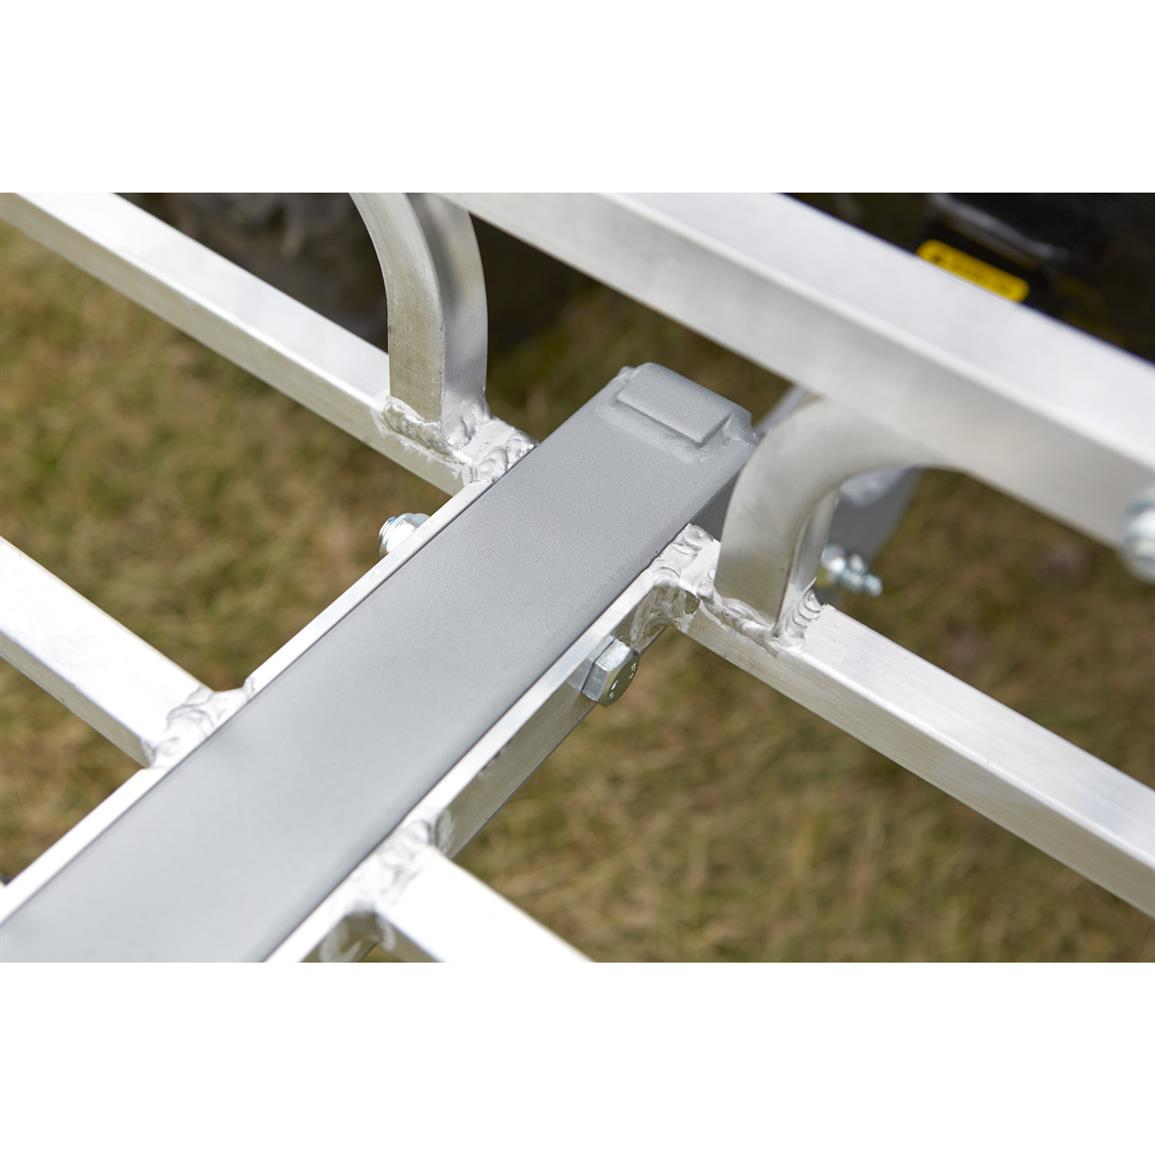 Side rails keep gear secure and provide tie-down points